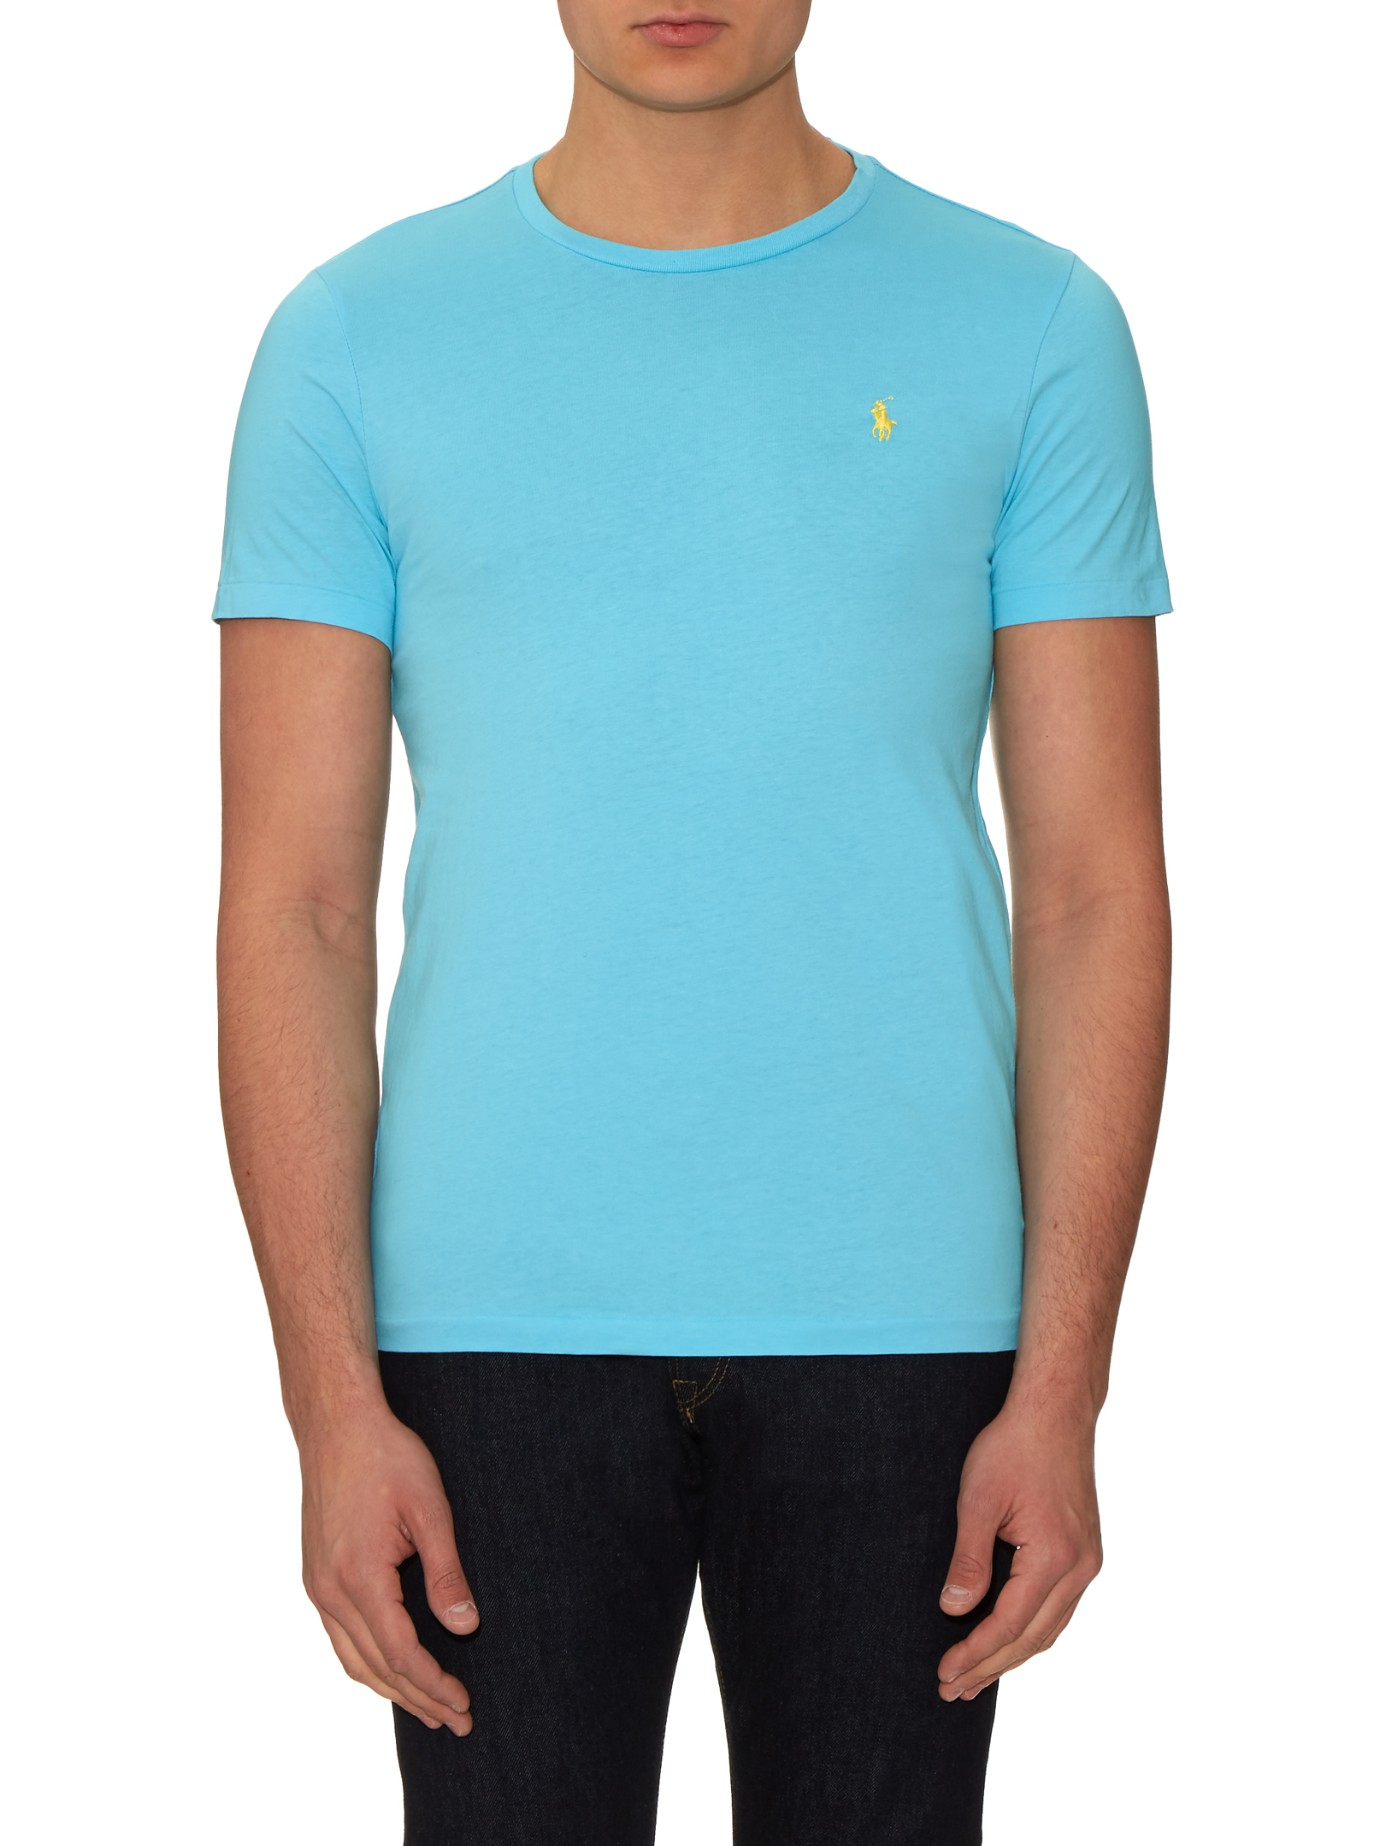 c4f9586d5 Polo Ralph Lauren Logo-embroidered Cotton T-shirt in Blue for Men - Lyst